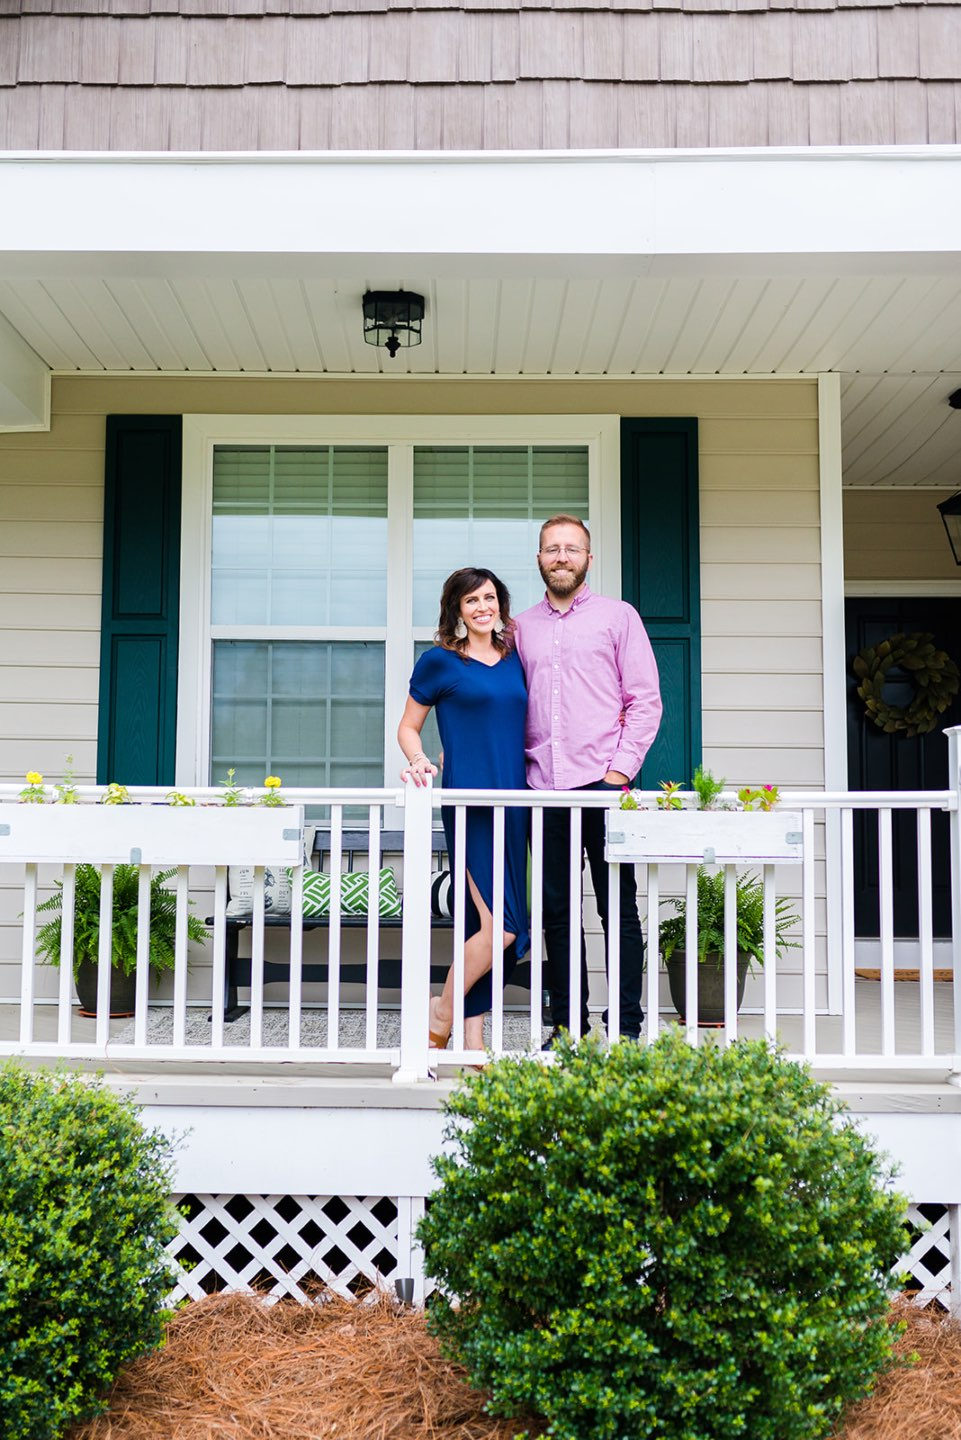 Second Year Updates to Our Ranch - I'm Fixin' To - @mbg0112 \ Our Updated Ranch House by popular North Carolina life and style blog, I'm Fixin' To: image of a couple standing together on the porch of their updated ranch house.